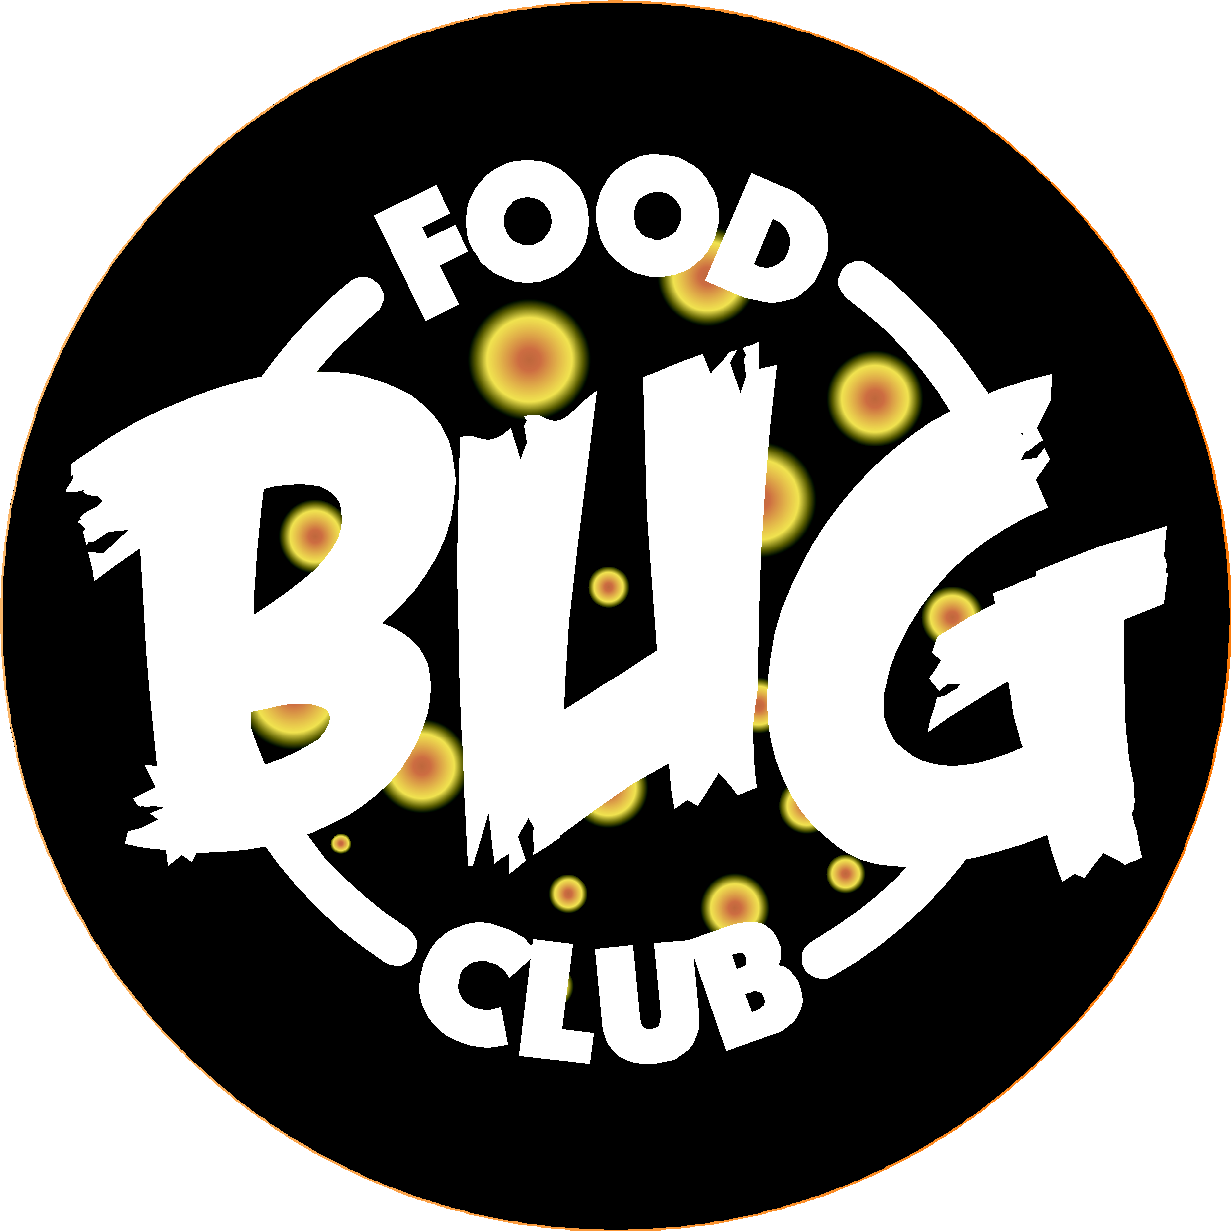 food safety challenge food bug club food bug club logo